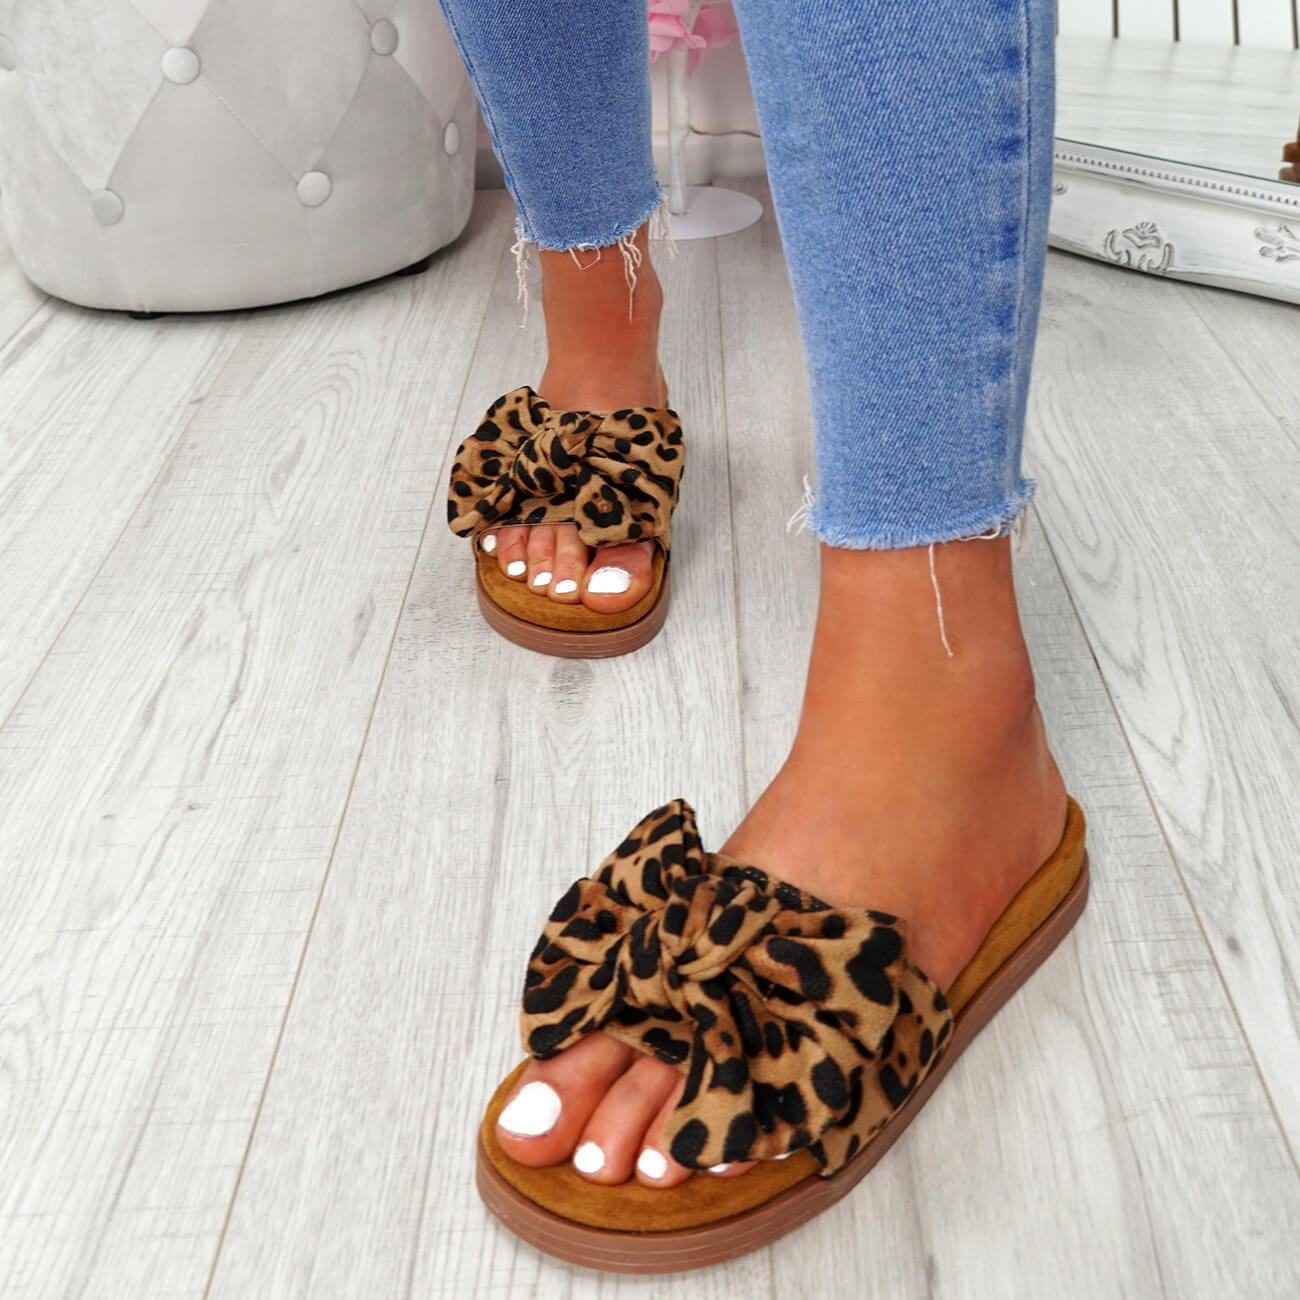 WOMENS-LADIES-FLAT-SANDALS-FRONT-BOW-COMFY-SUMMER-CASUAL-HOLIDAY-SHOES-SIZE-UK thumbnail 23